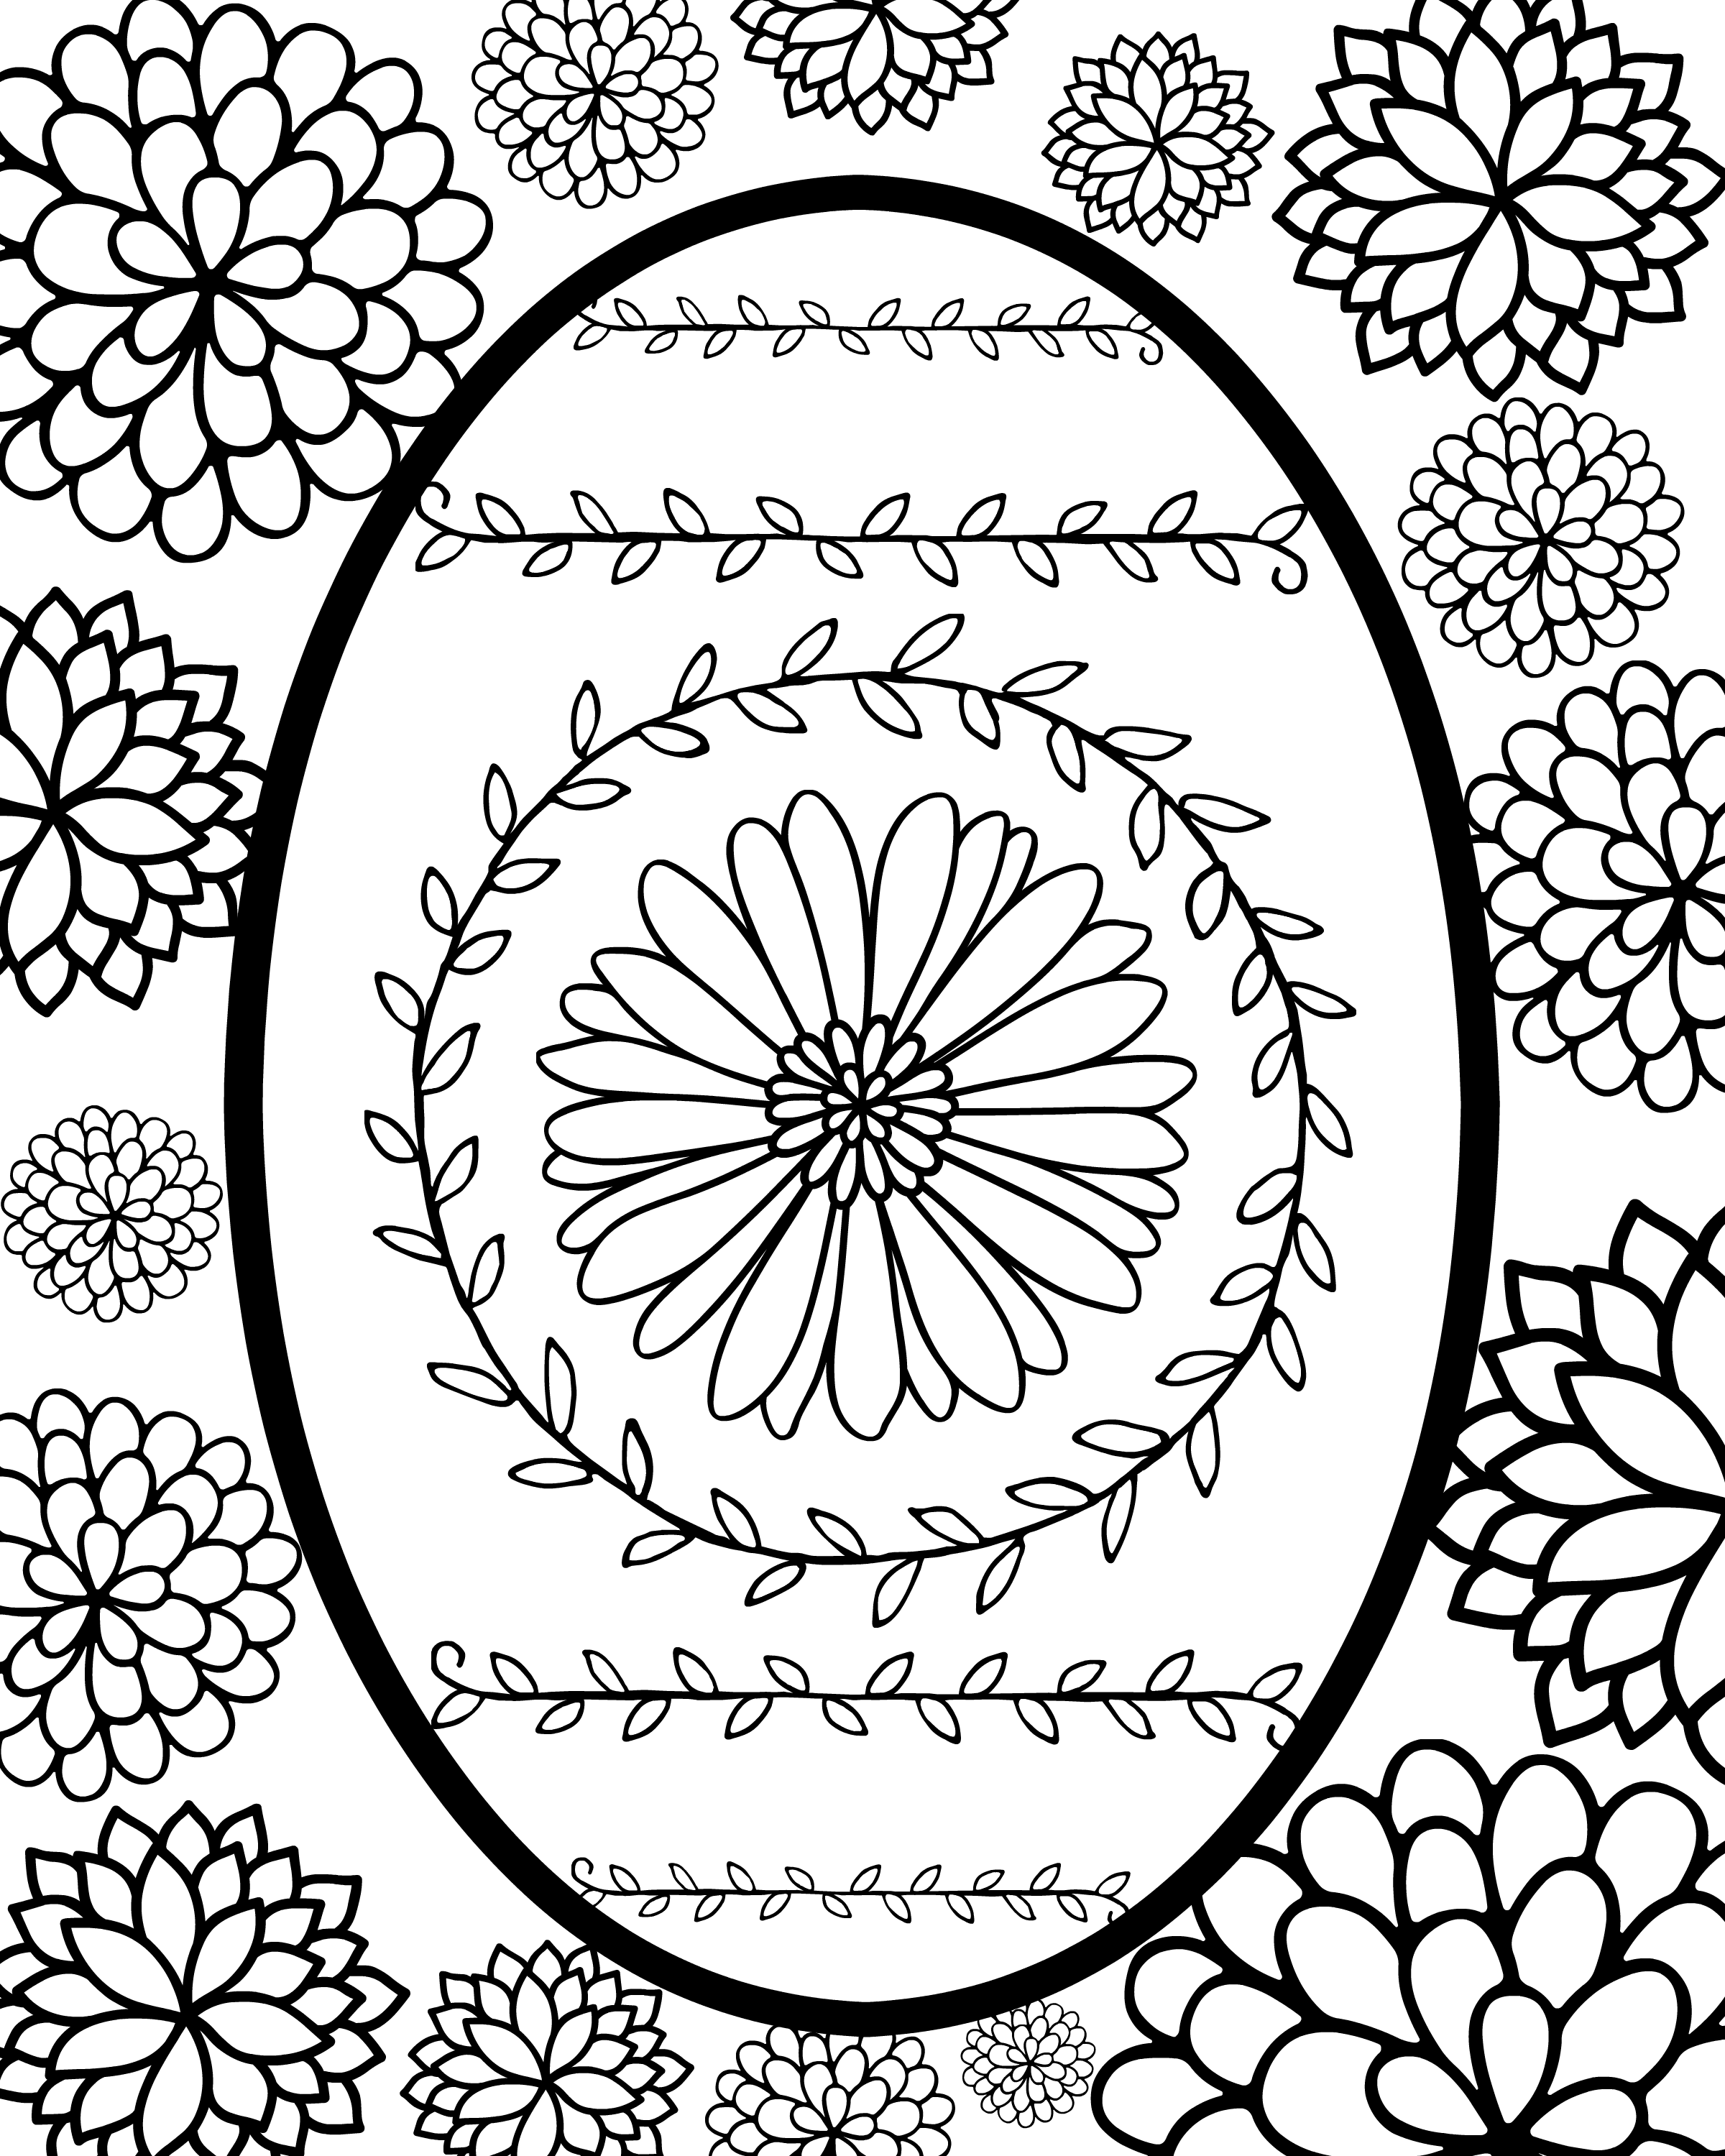 easter egg coloring pages top 25 free printable easter egg coloring pages online coloring easter egg pages